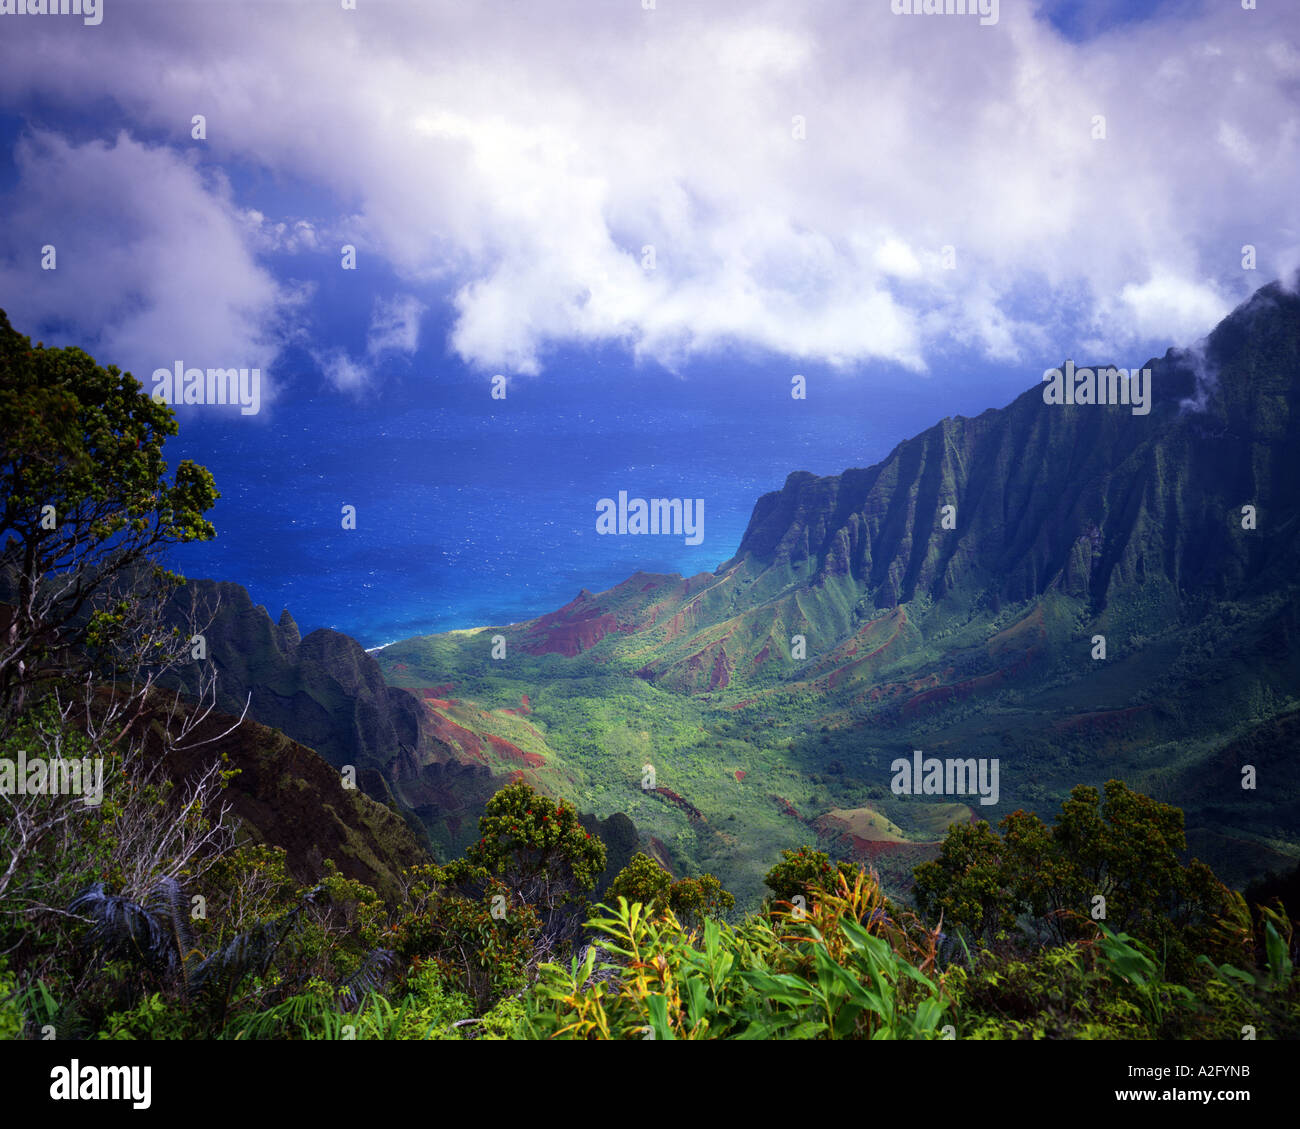 USA - HAWAII: Kokee State Park in Kalalau Valley on the island of Kauai - Stock Image